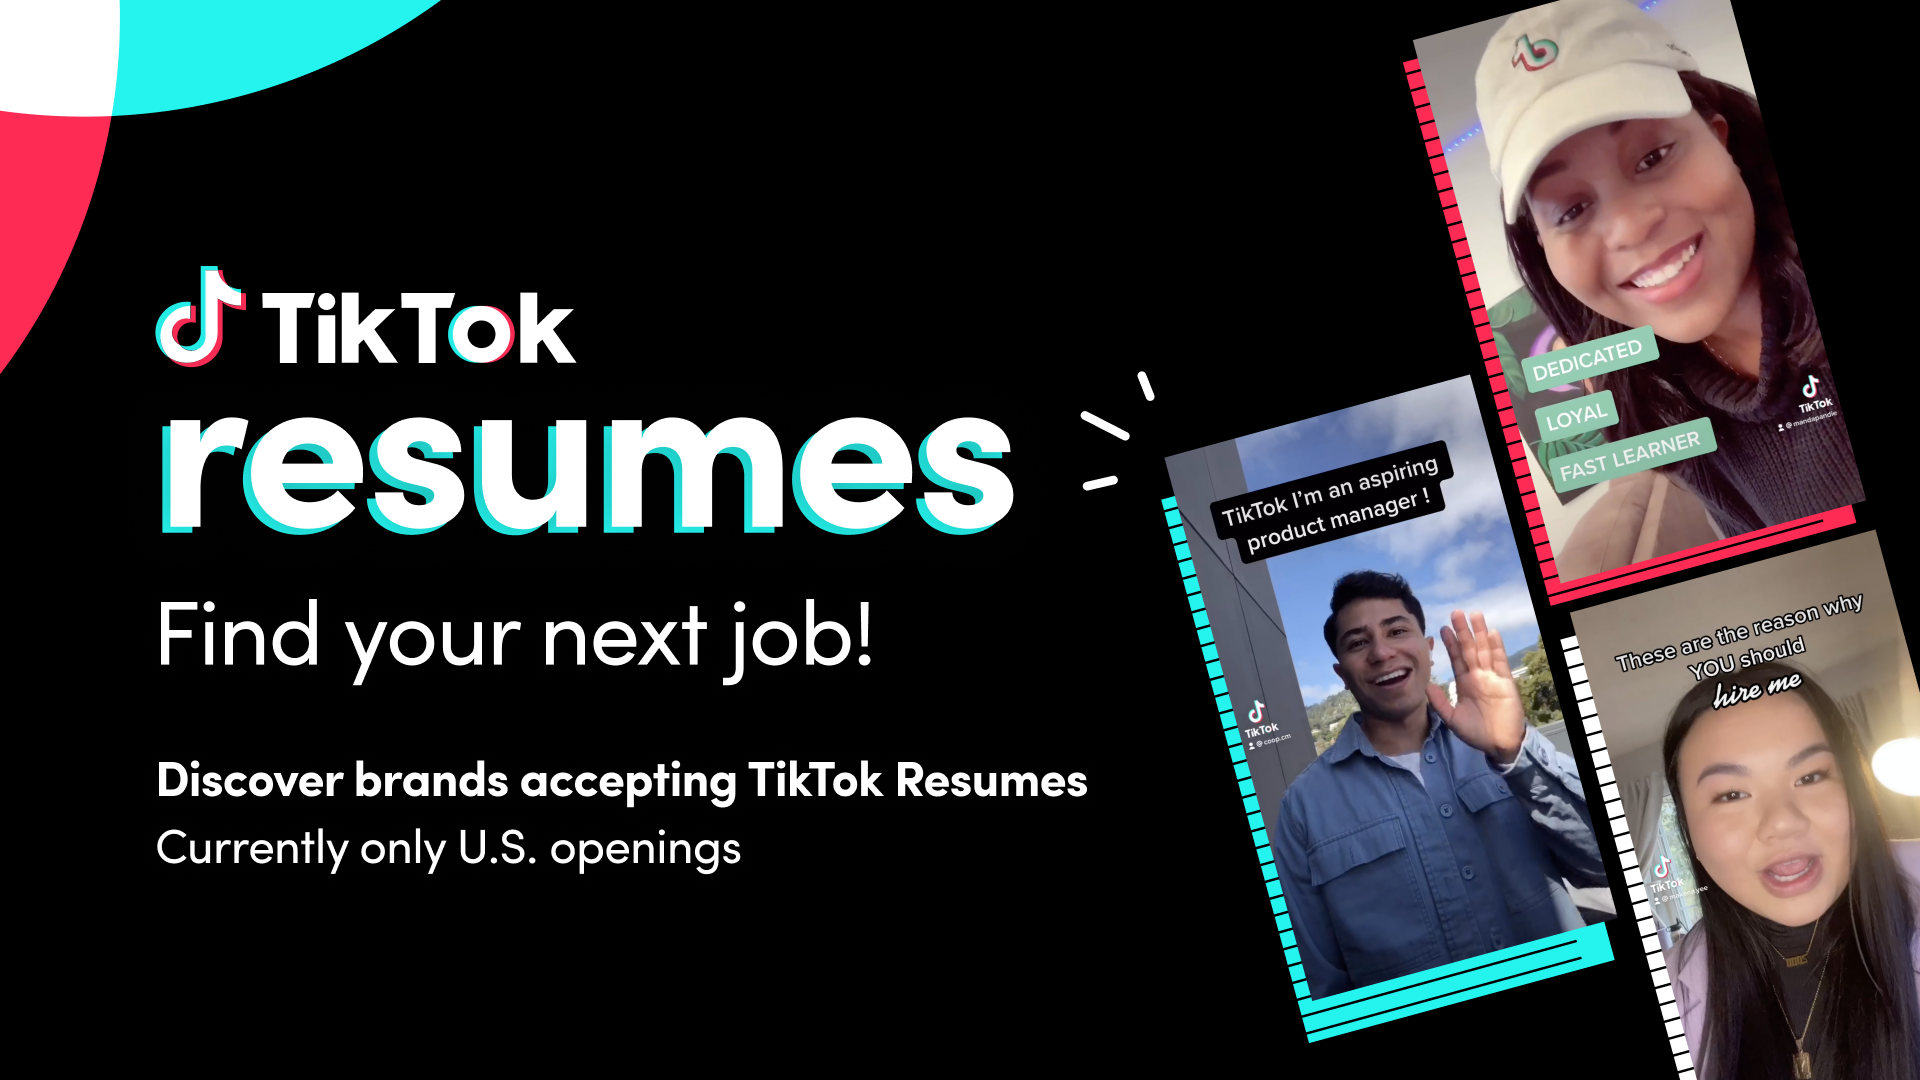 tiktok_resumes_apply_for_jobs_with_short_videos.png